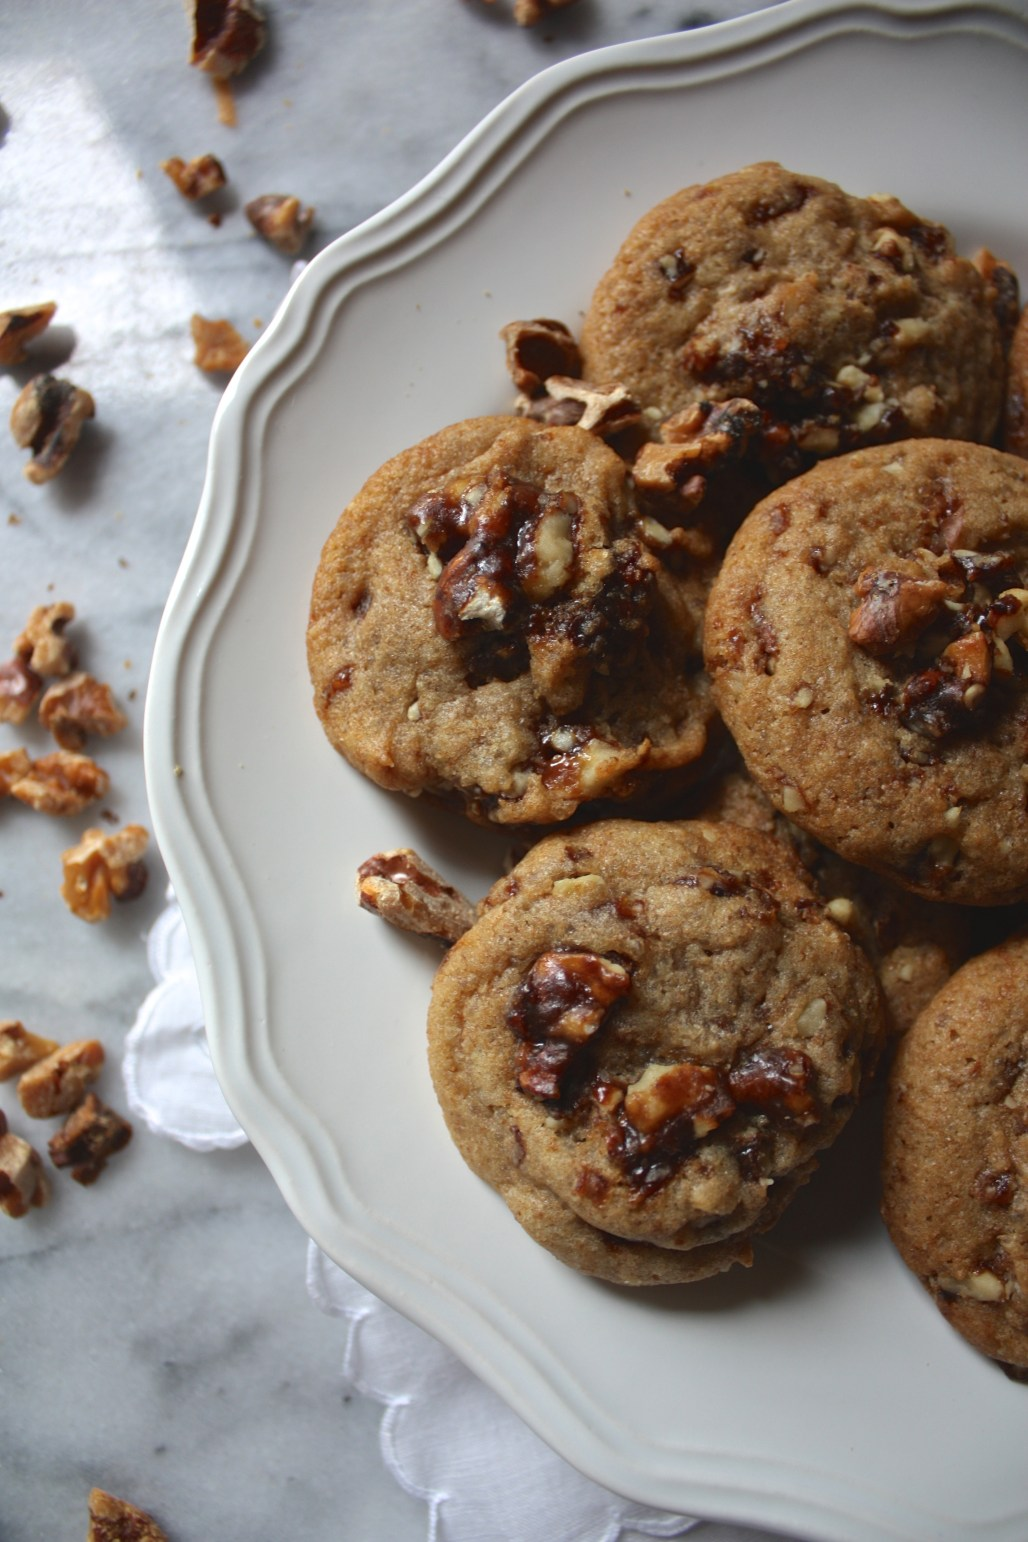 Candied Walnut Cookies